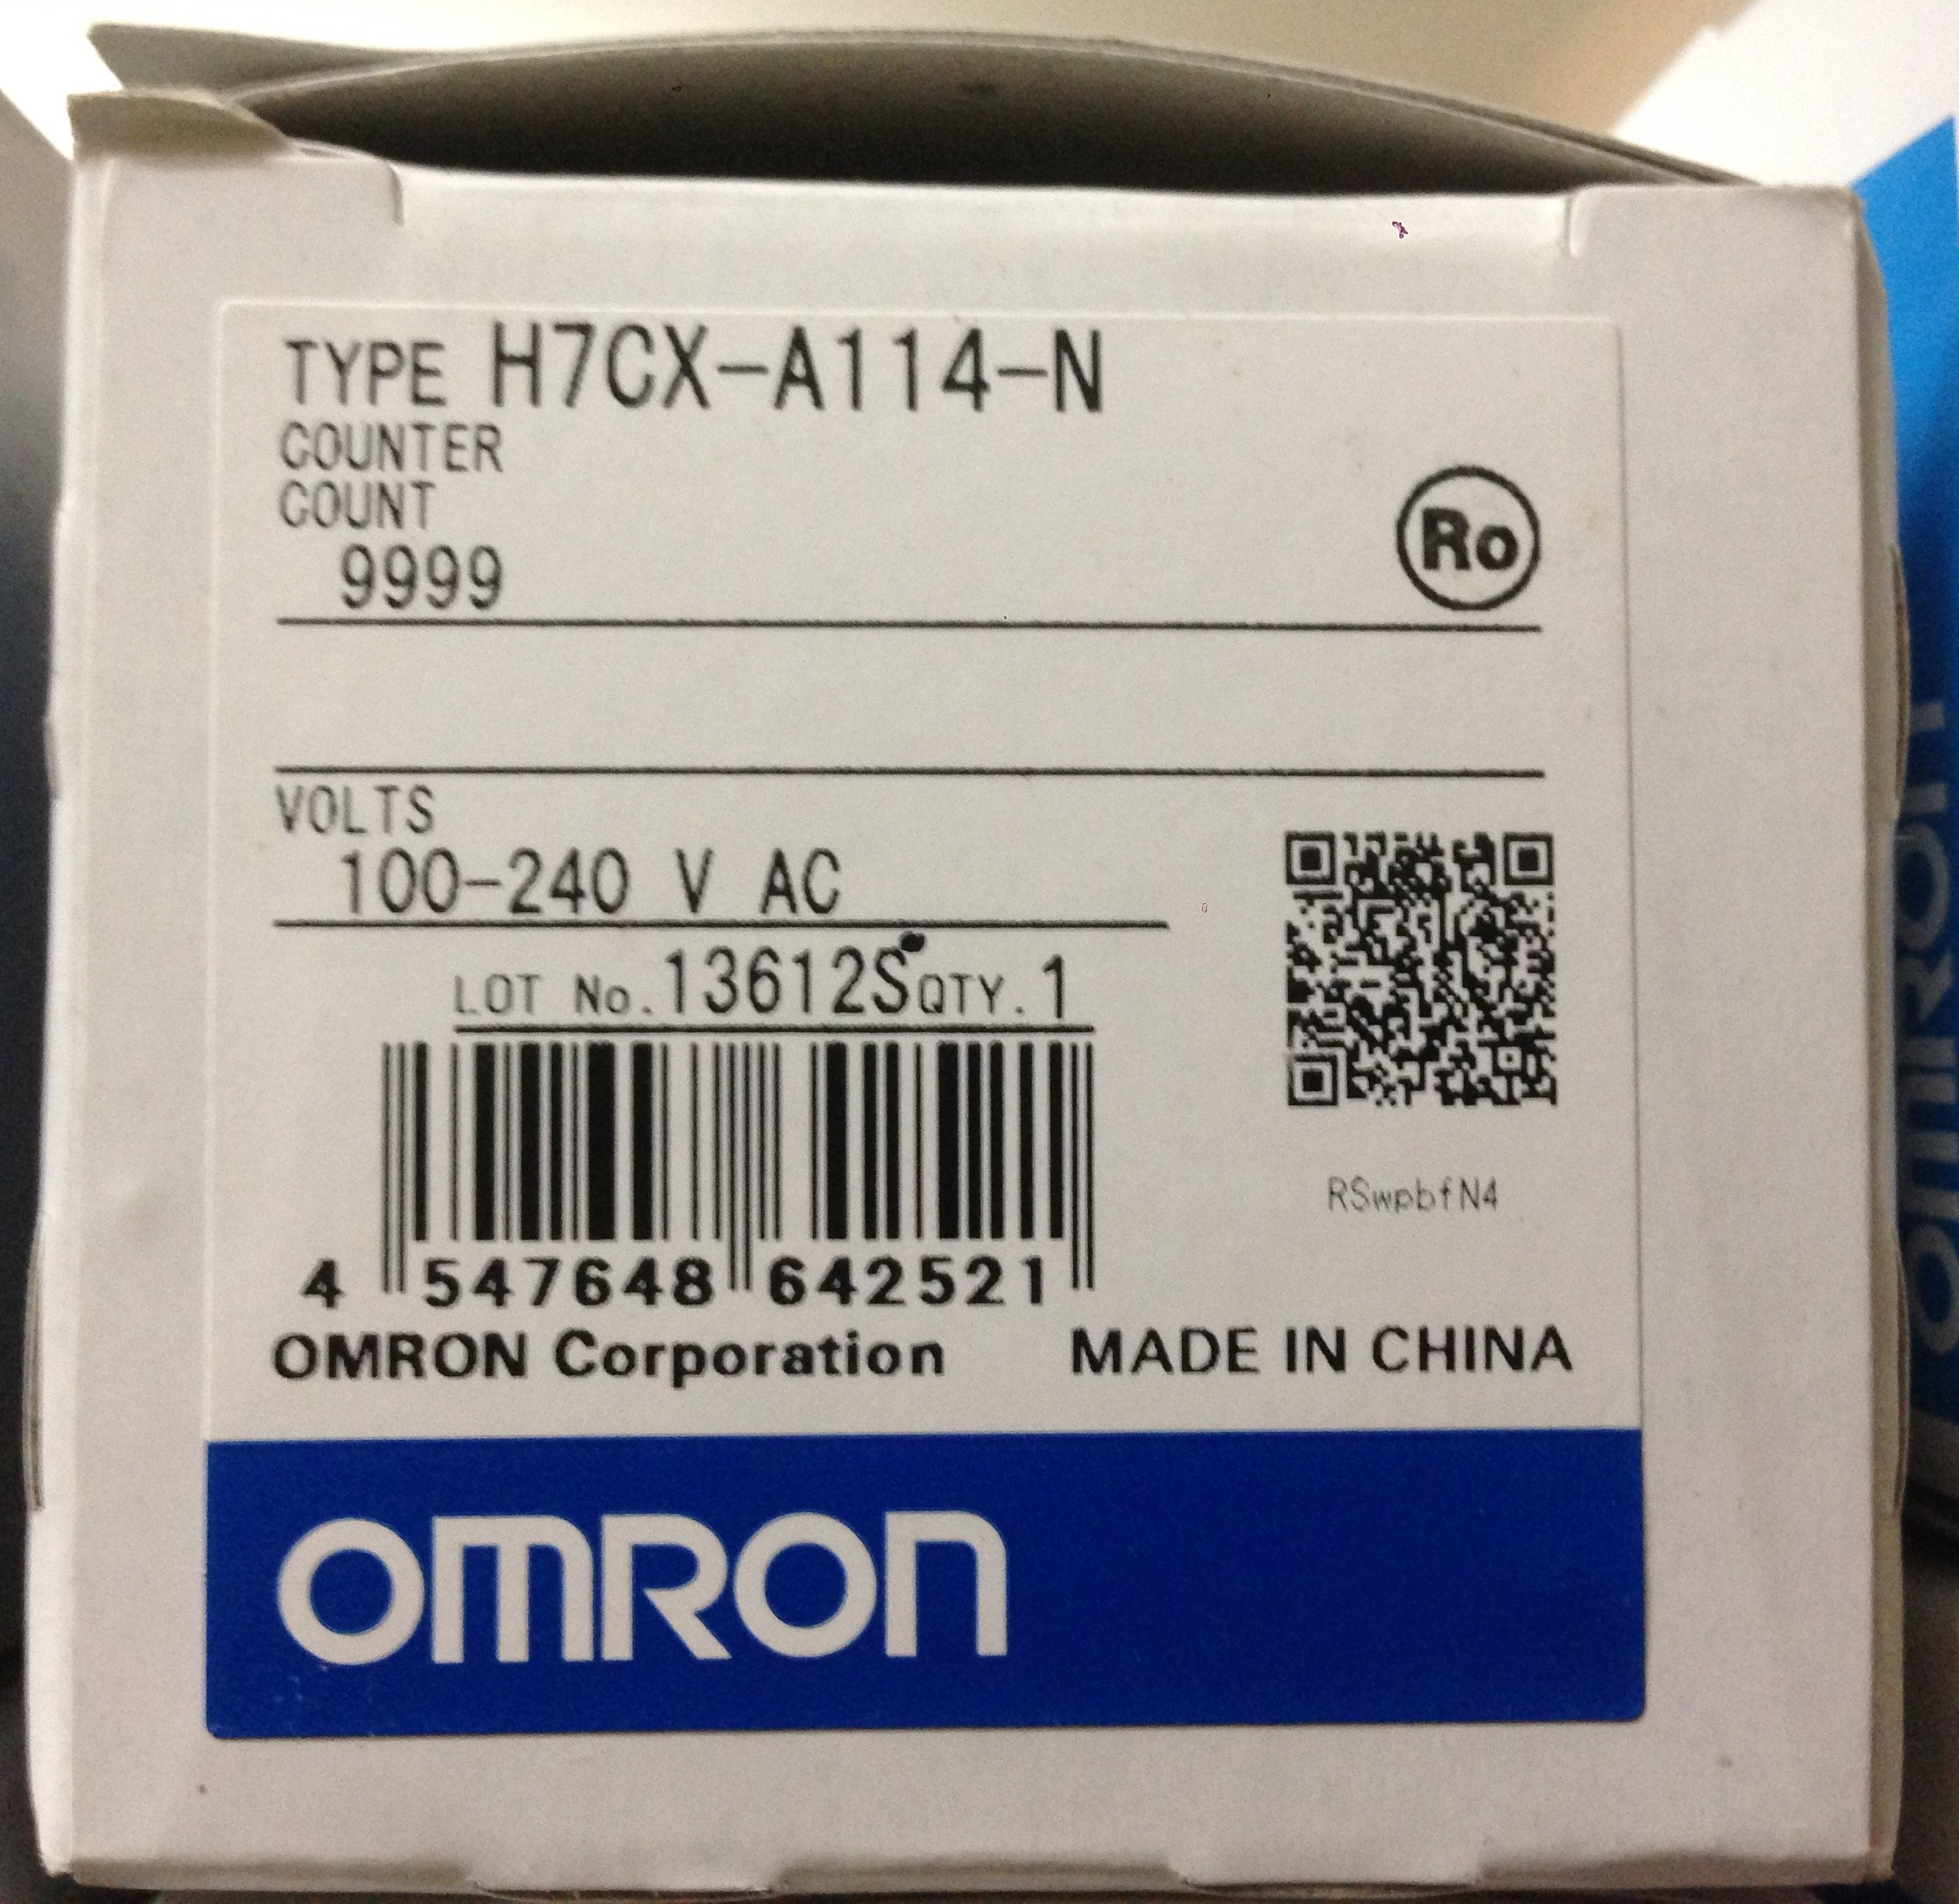 Omron H7CX-A114-N Digital Counter